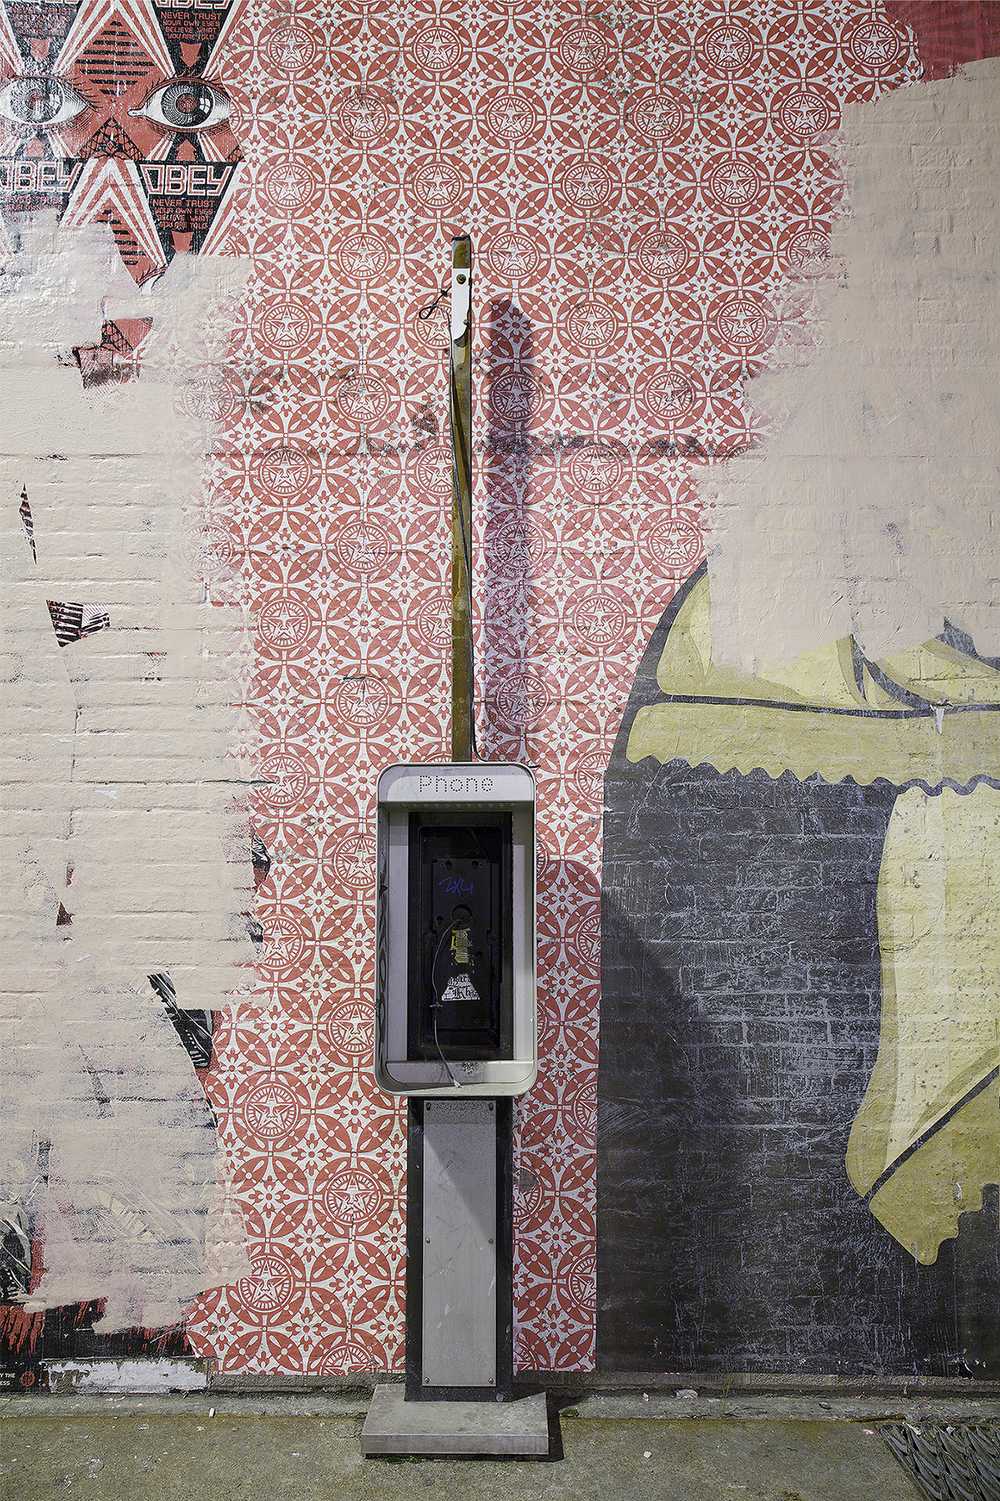 Phone Booth (Obey)